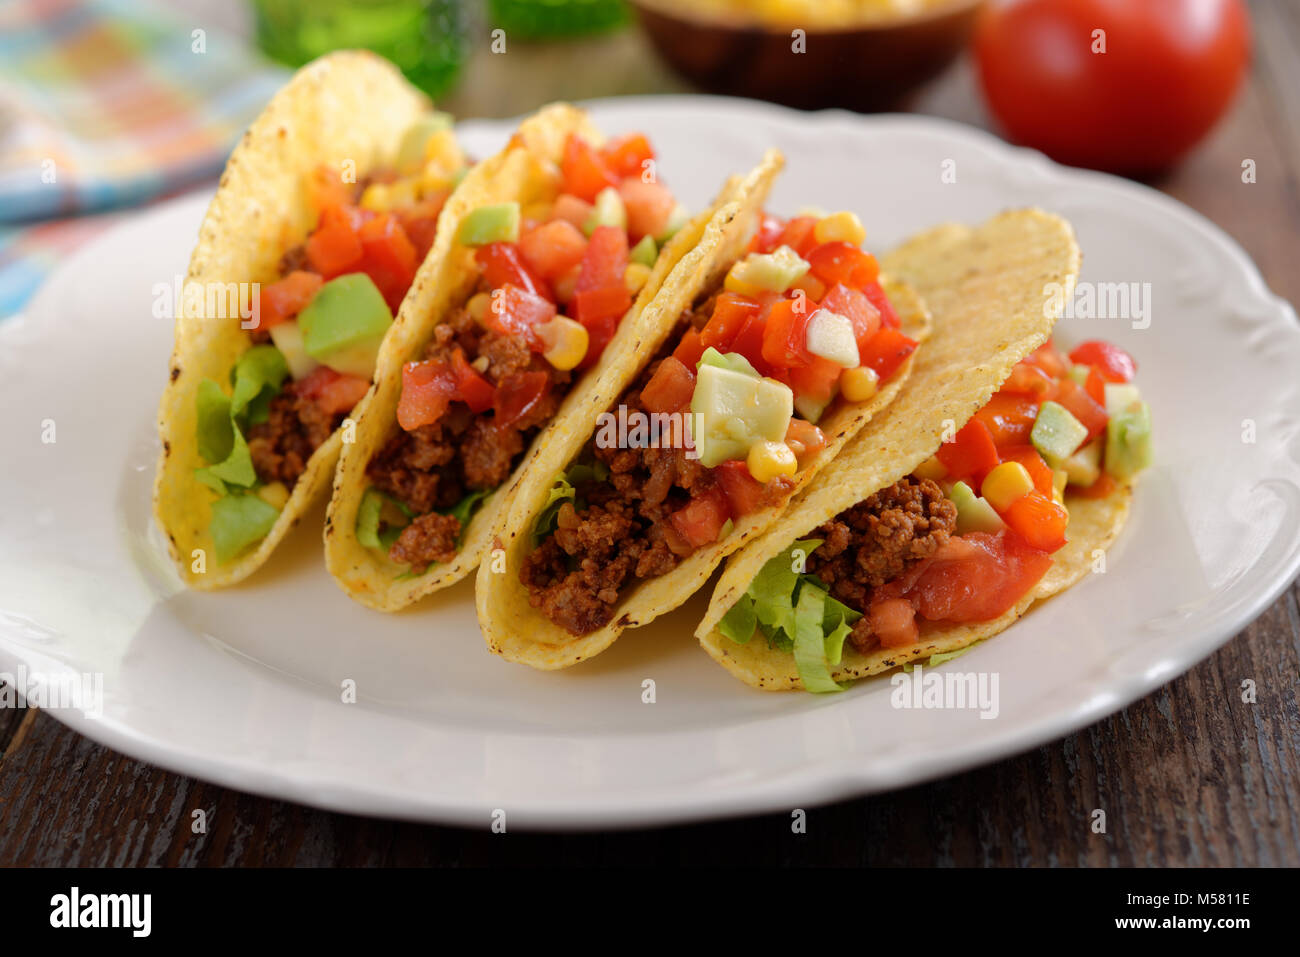 Tacos with ground beef and vegetables - Stock Image